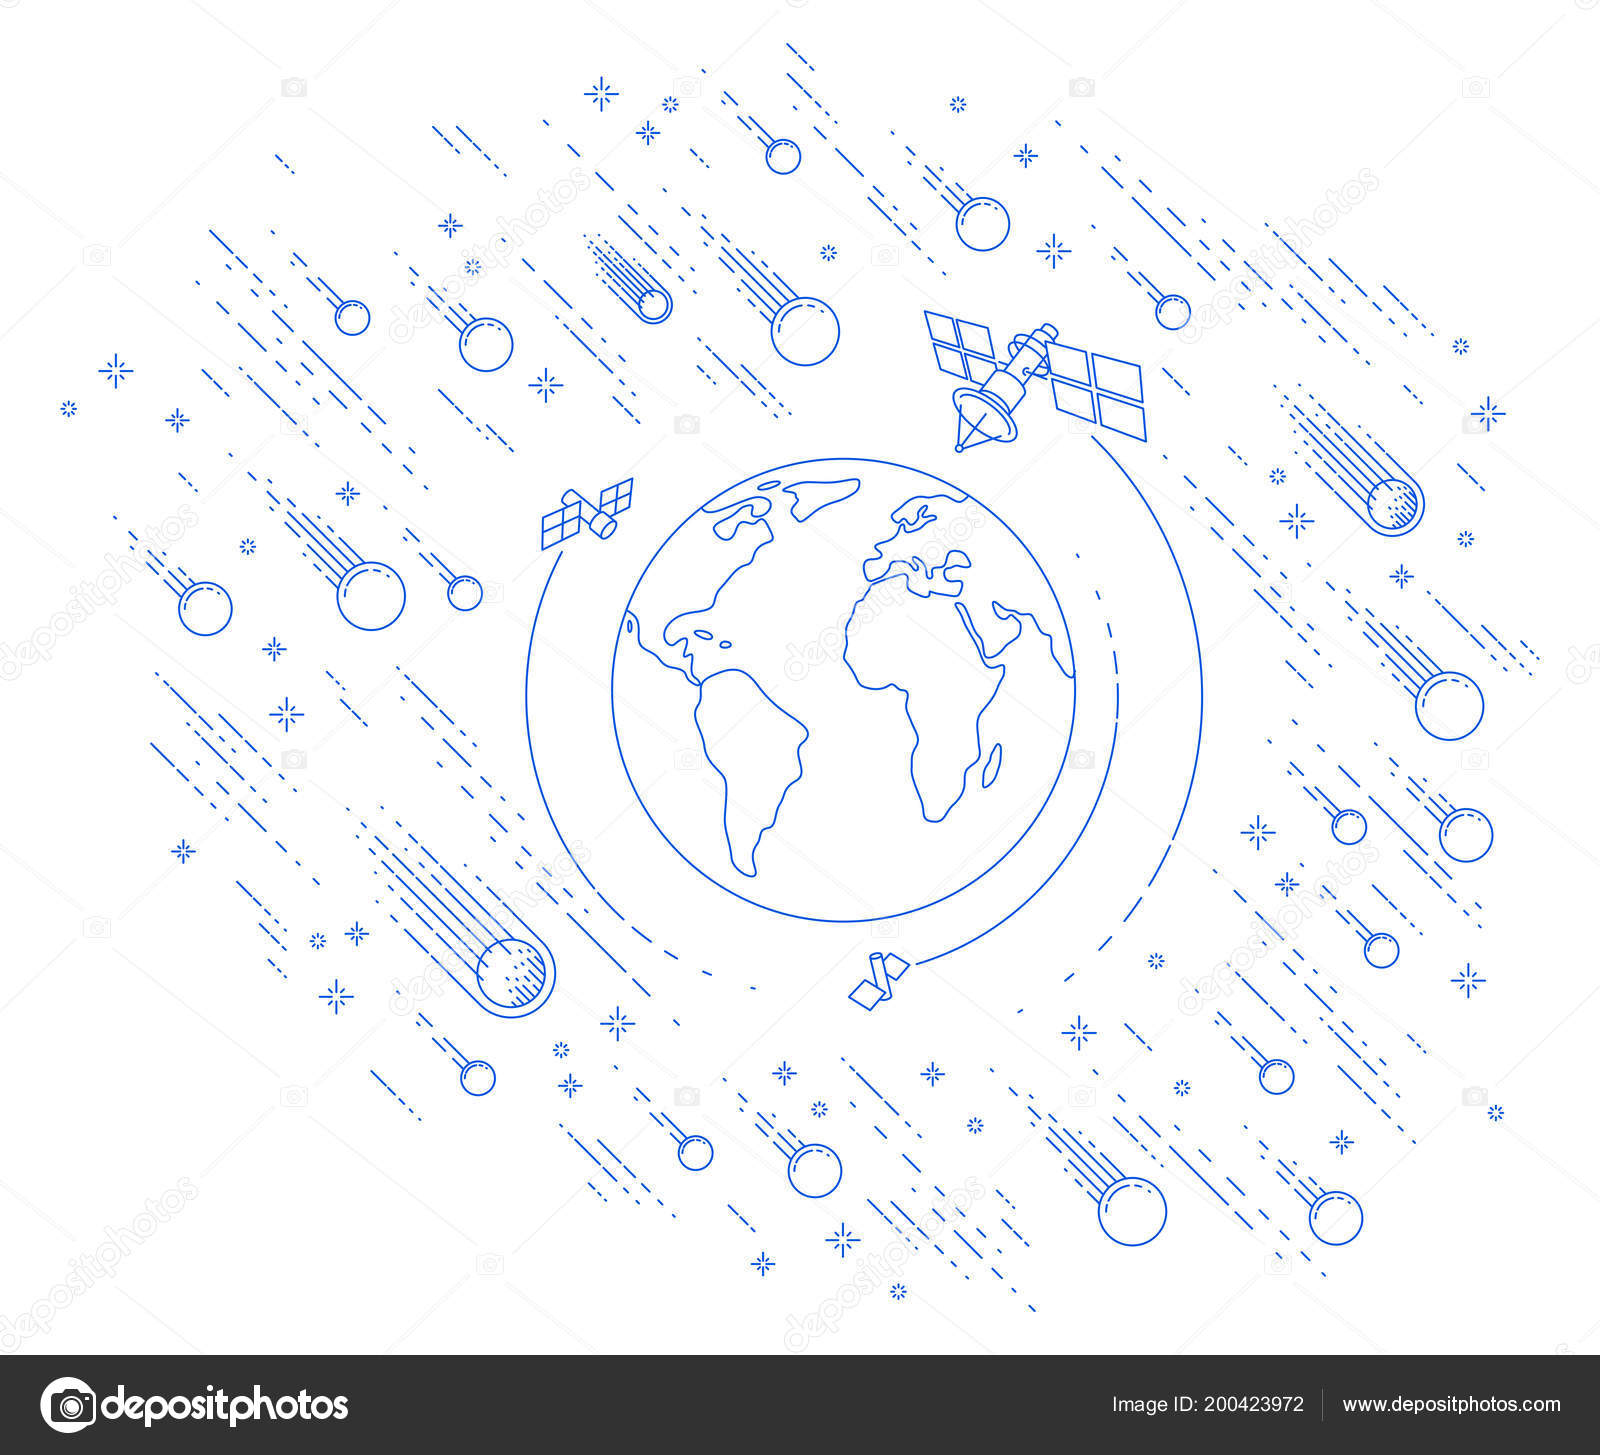 small earth endless space surrounded artificial satellites stars Ear Anatomy Diagram small earth endless space surrounded artificial satellites stars other elements \u2014 stock vector